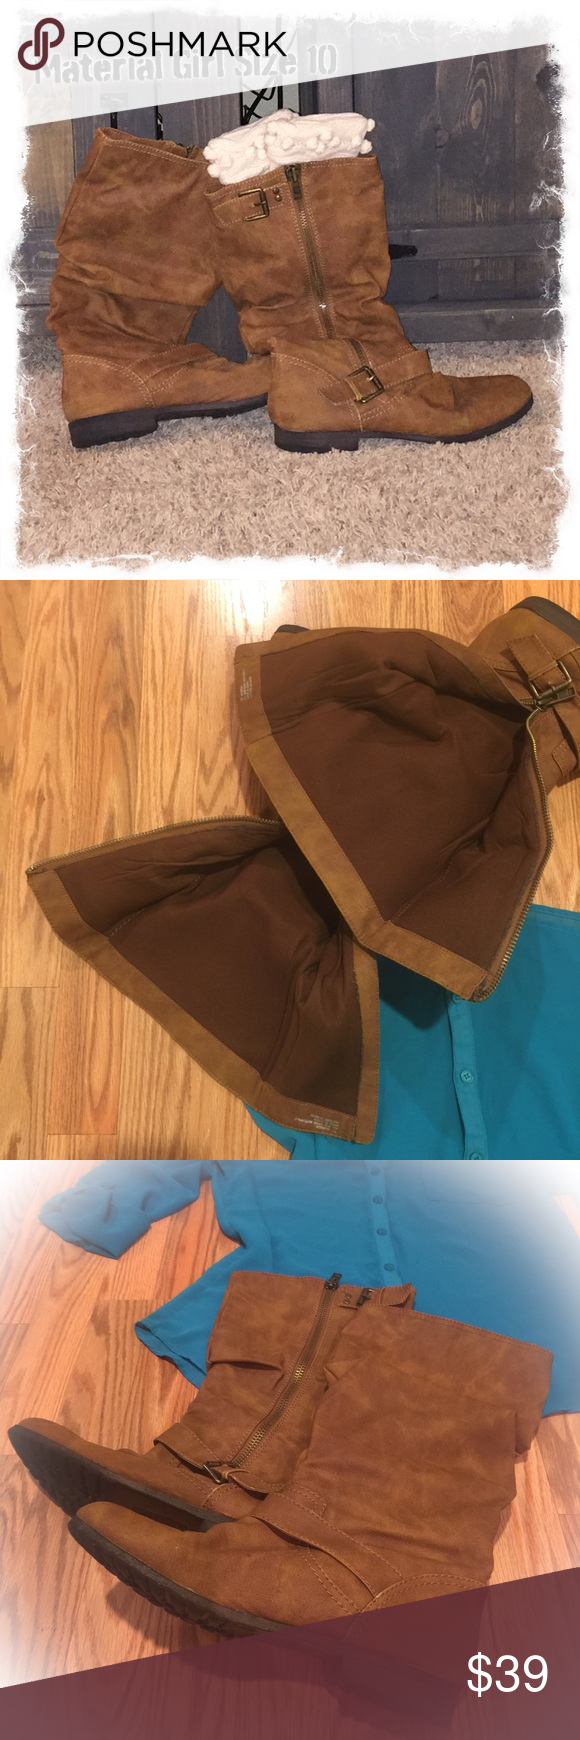 """💯LOWERED AGAIN DUE TO WEEKEND SHIPPING DISCOUNT💯 BEAUTIFUL TAN, WORE TWICE, MATERIAL GIRL, SLOUCHY BOOTS, MATERIAL GIRL, SIZE 10, 1/2"""" HERL! NO FLAWS TO REPORT! Material Girl Shoes Winter & Rain Boots"""